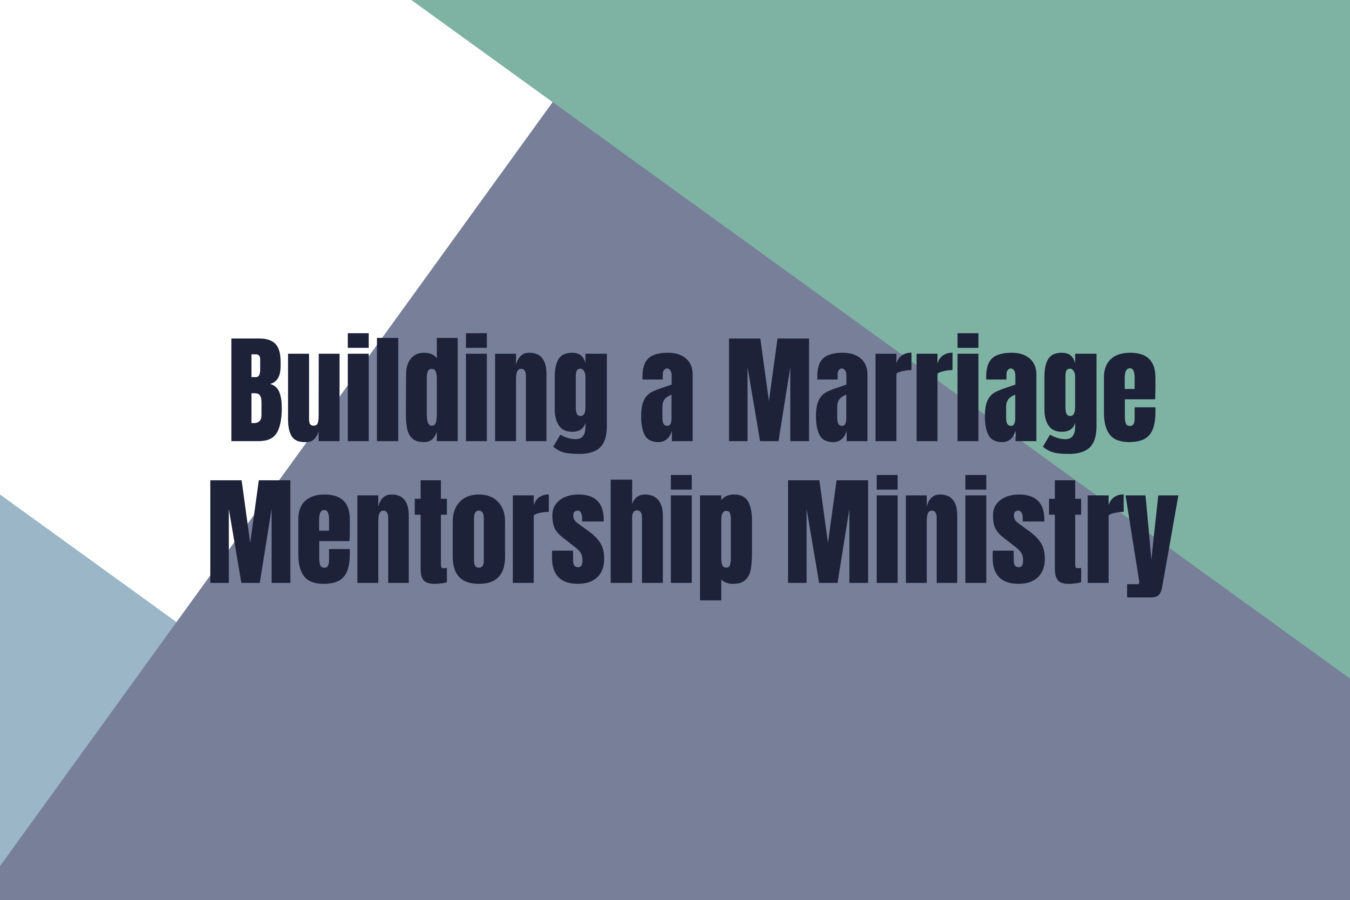 Building a Marriage Mentorship Ministry